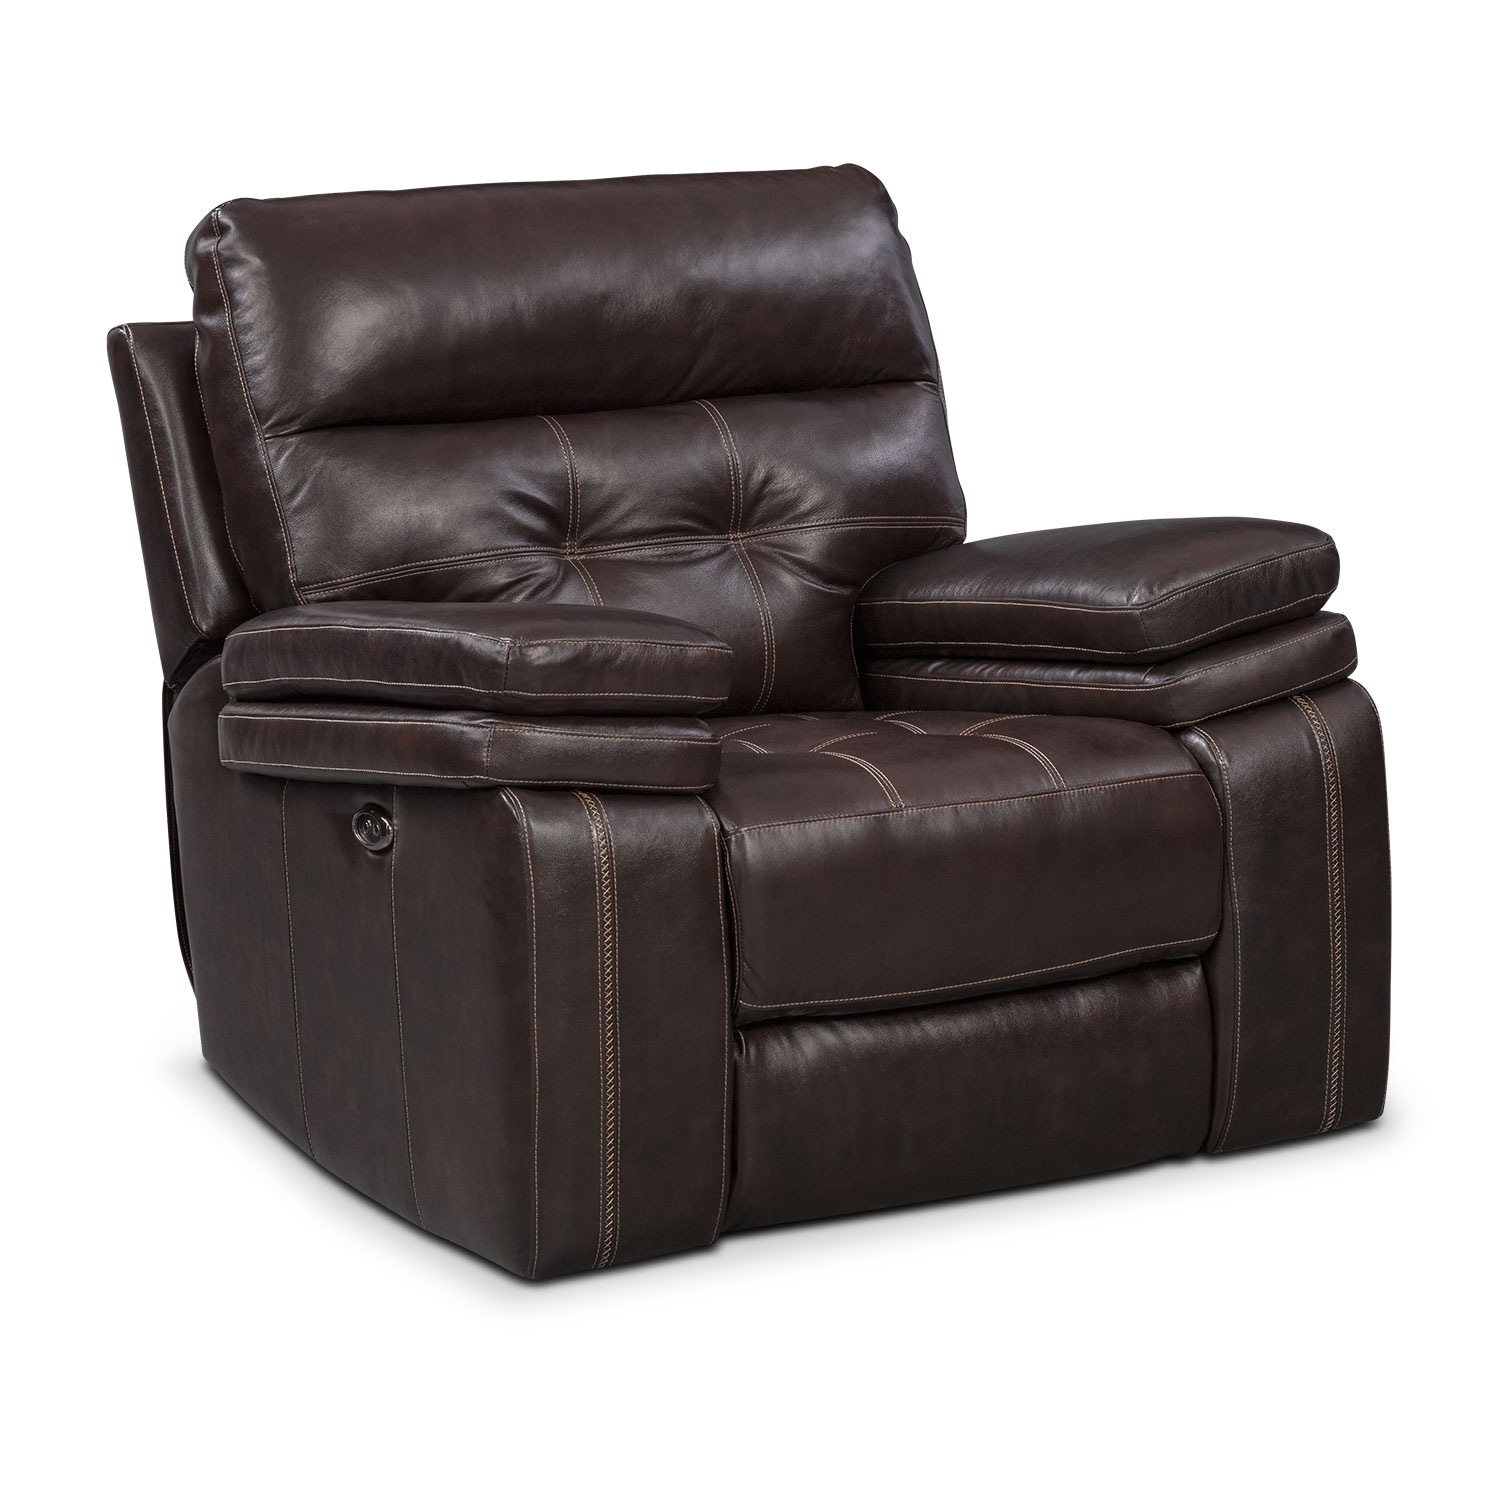 Living Room Furniture - Brisco Brown Power Glider Recliner